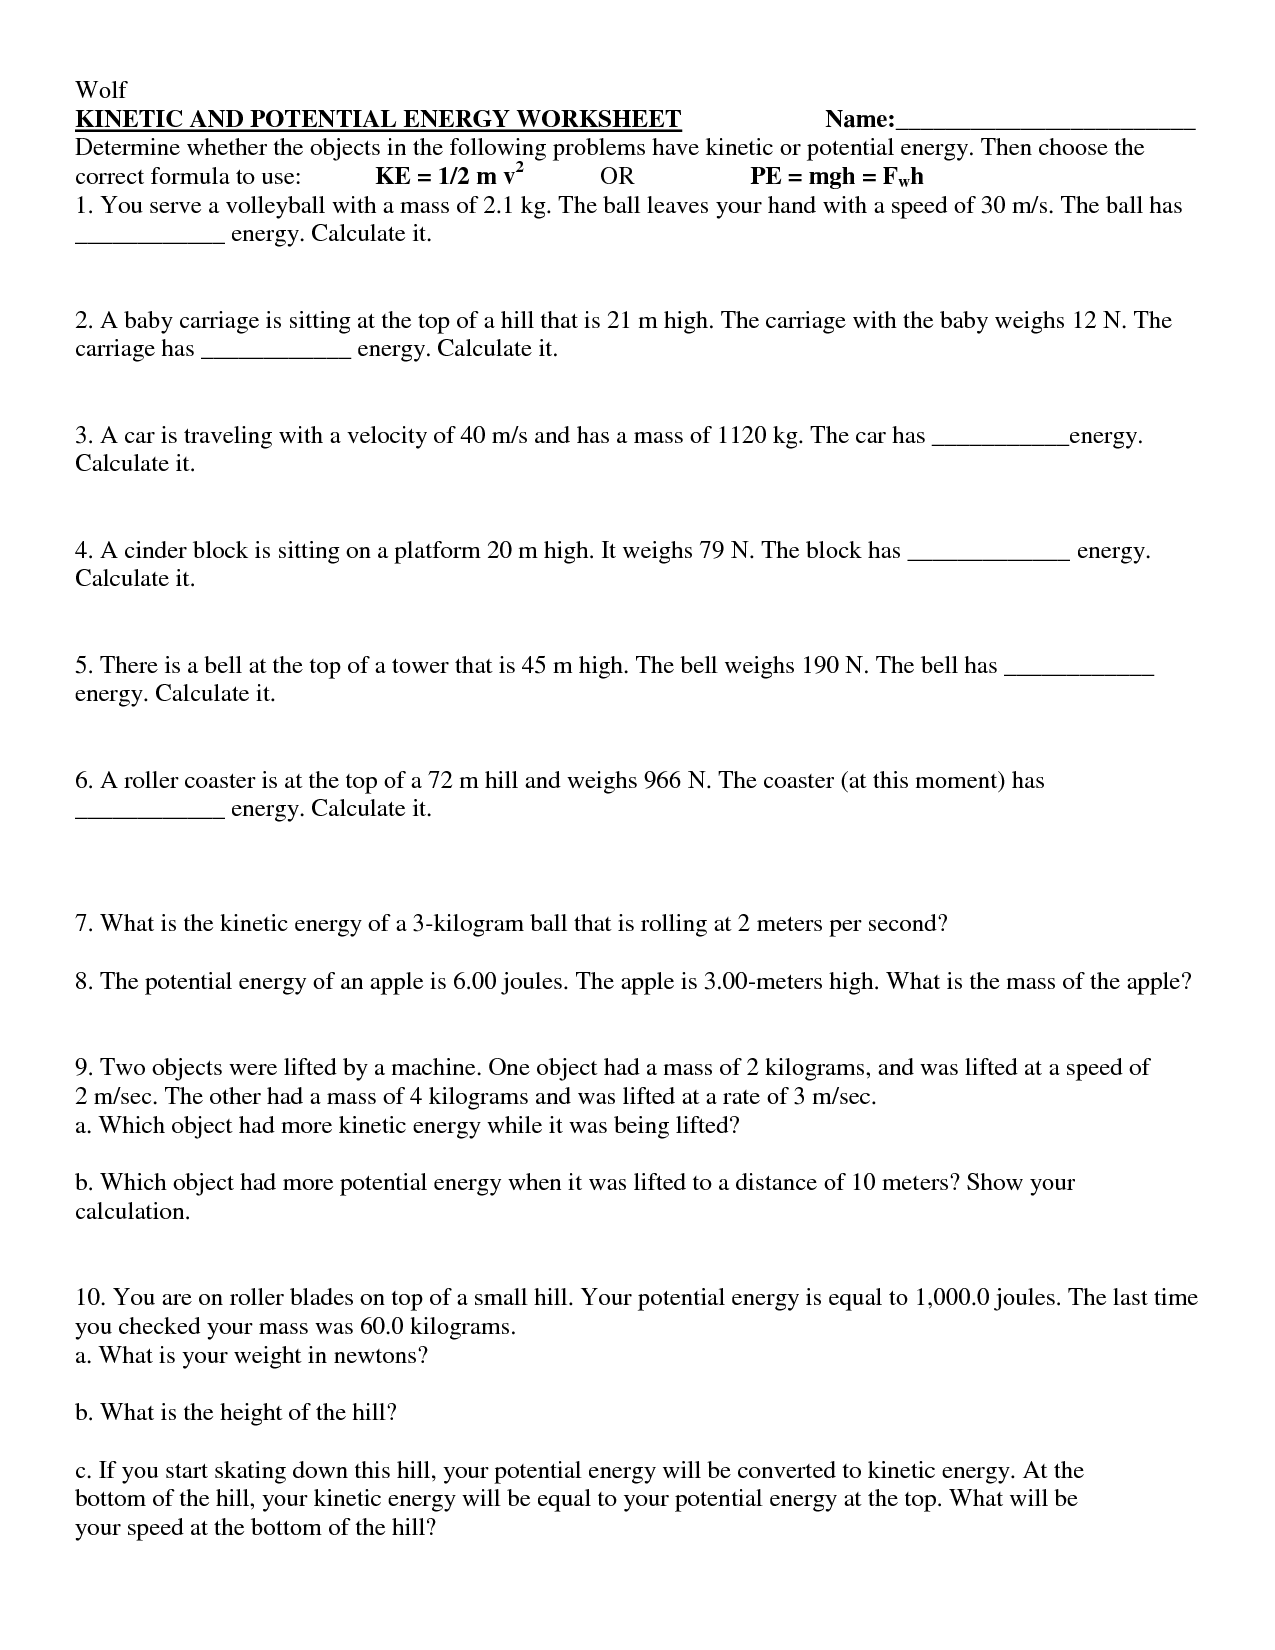 14 Best Images of Worksheets Potential And Kinetic Energy ...